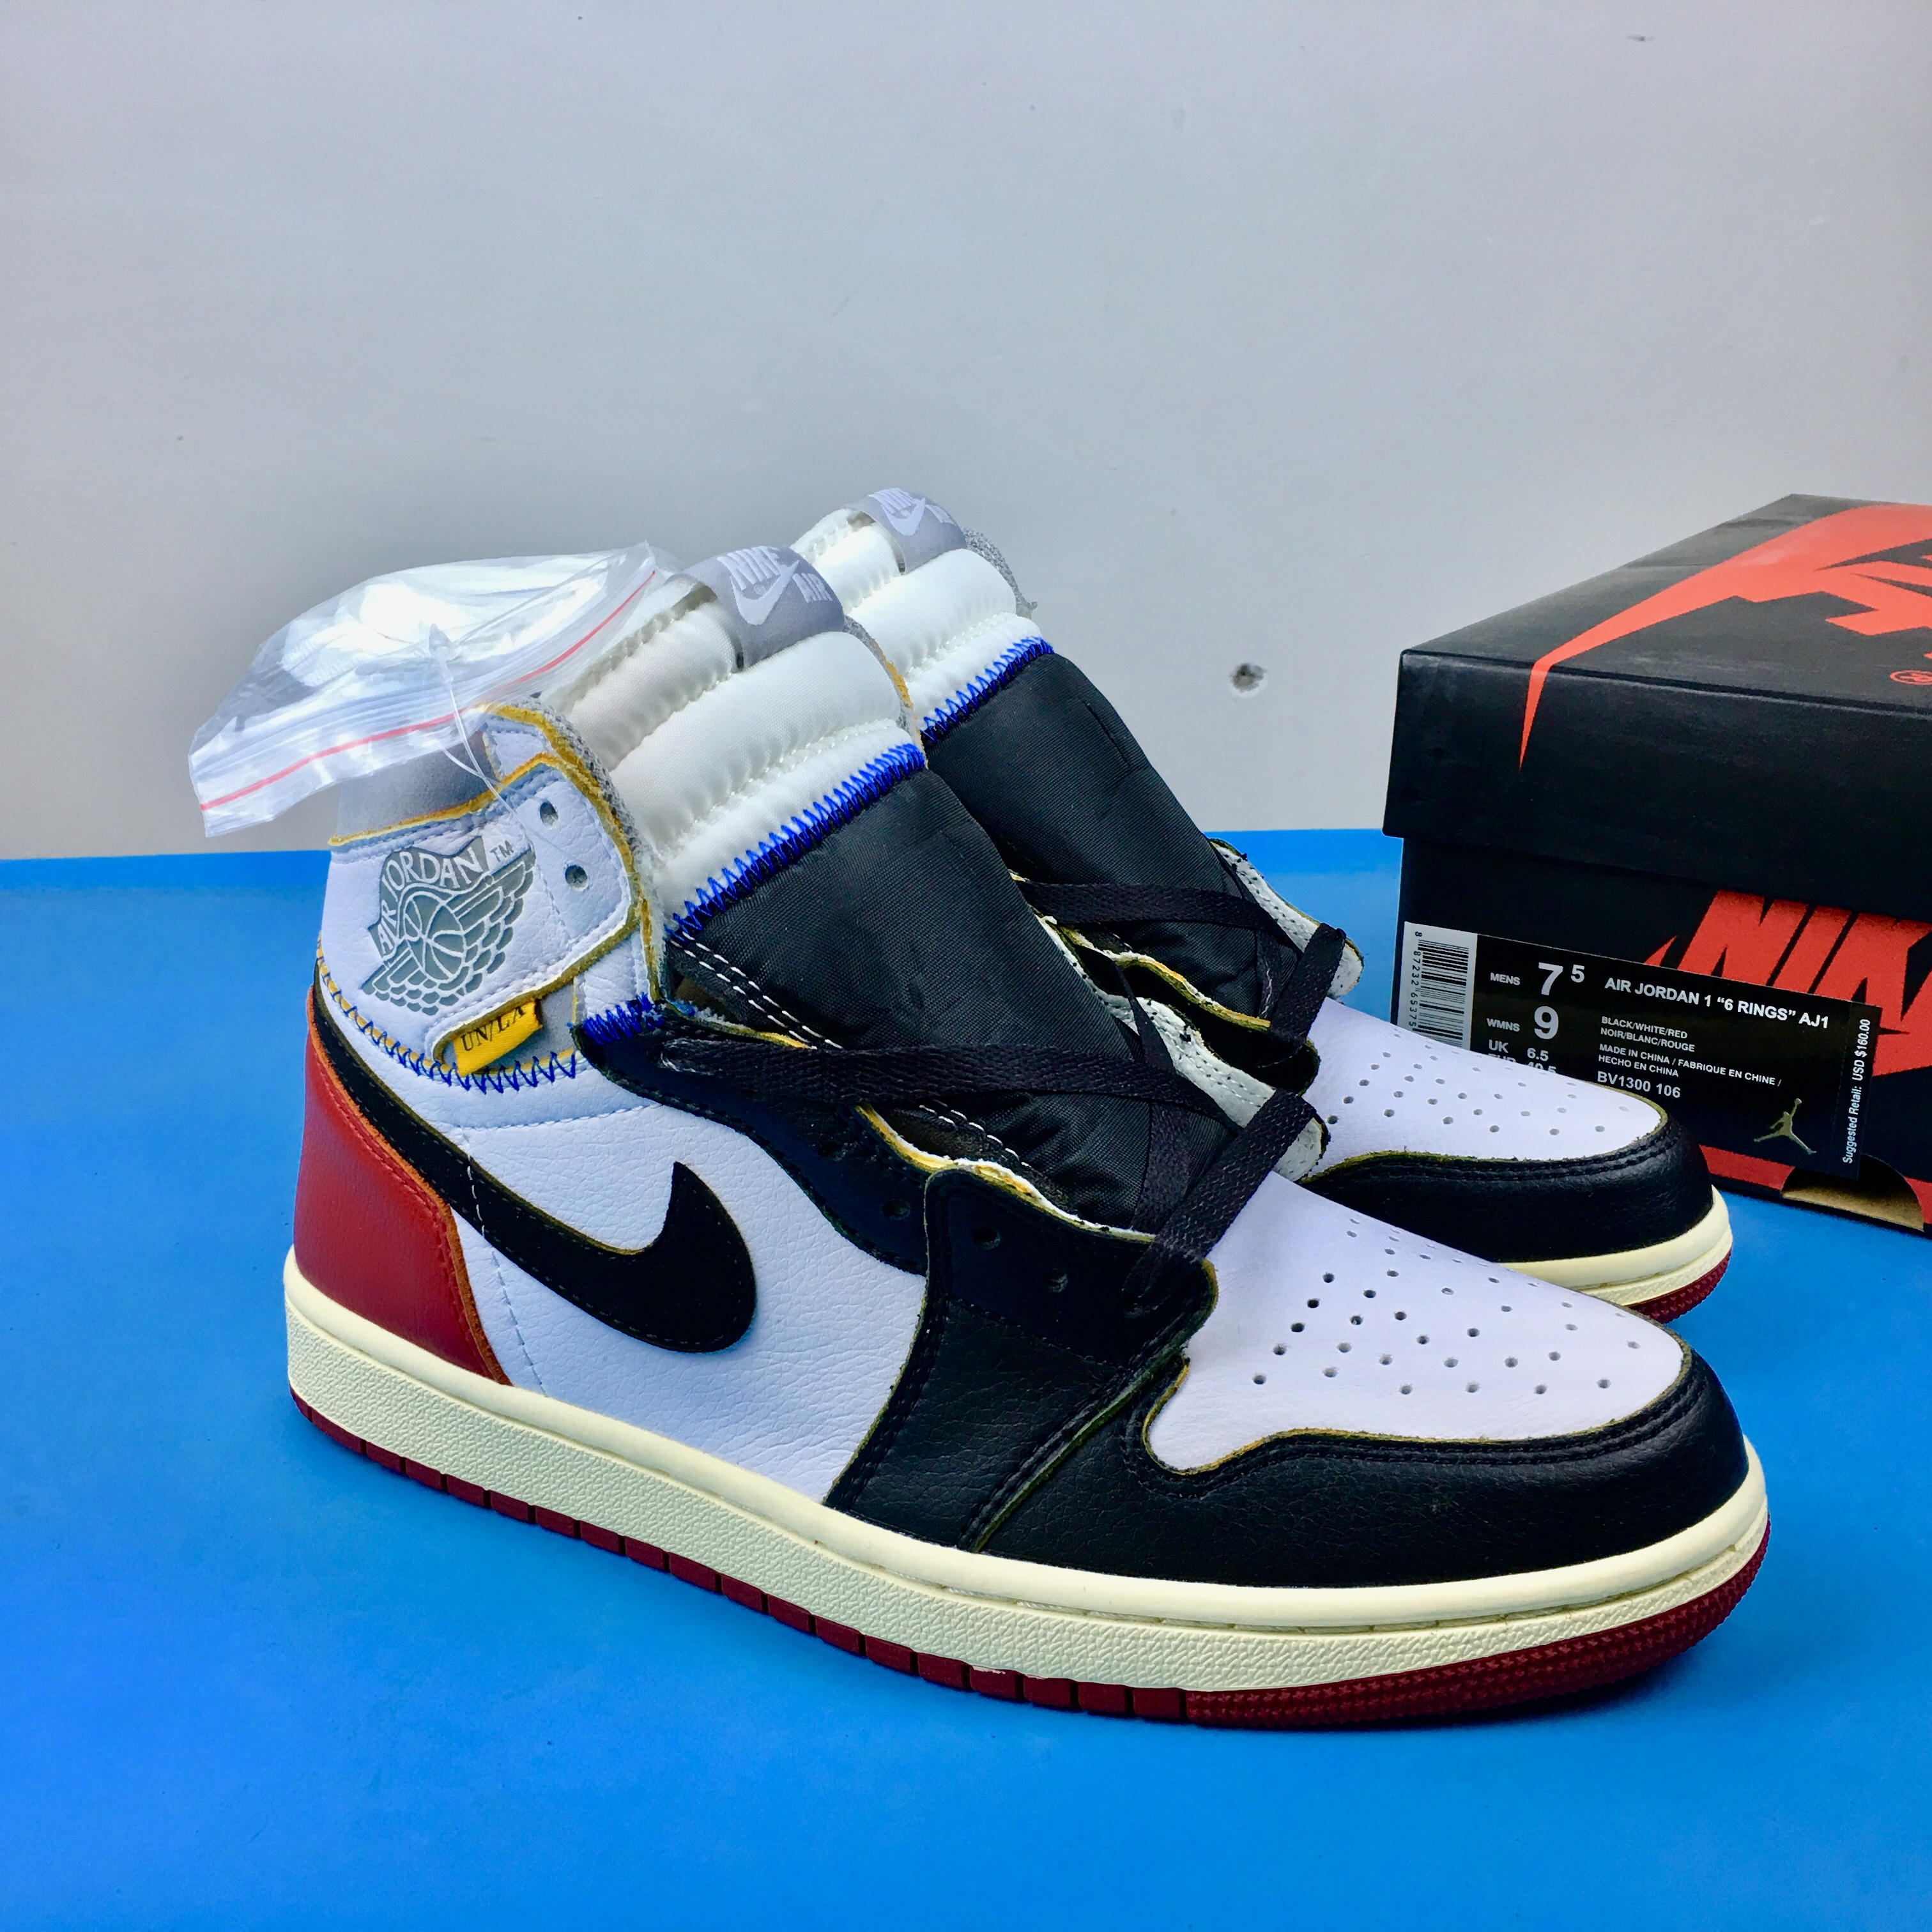 Union x Air Jordan 1 Retro High OG NRG Shoes